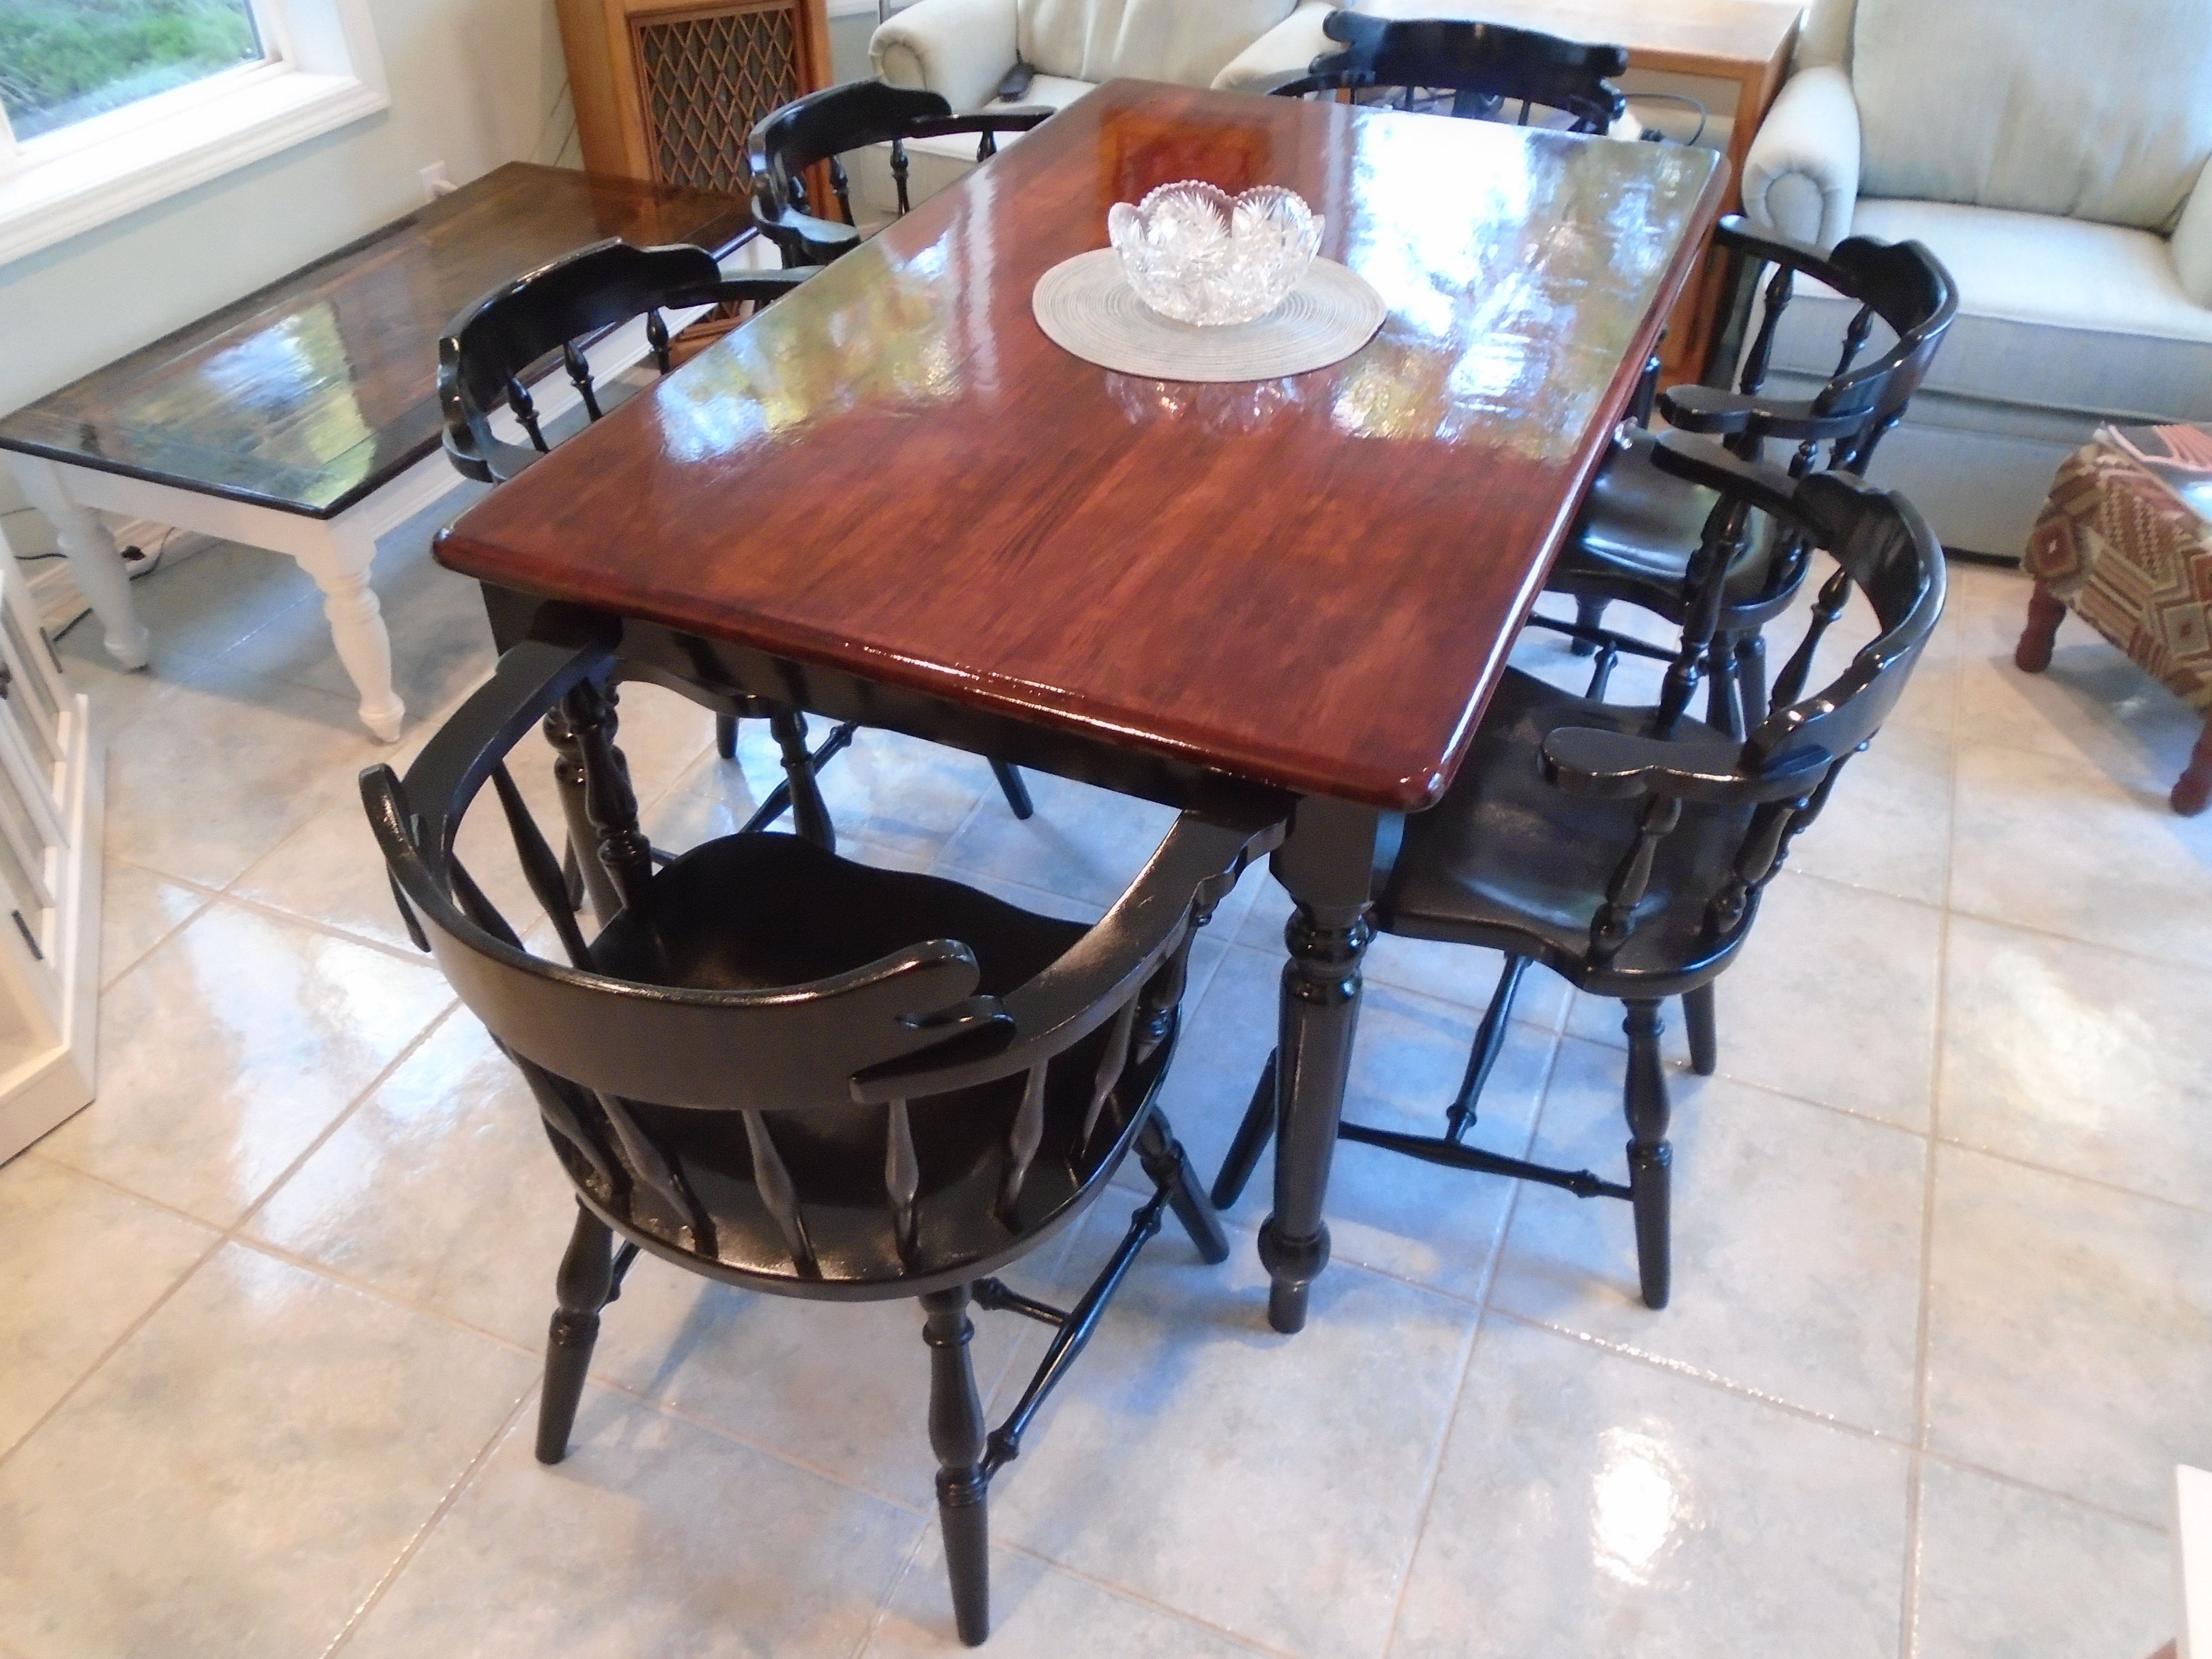 Rustic Farmhouse Table Brown Stained Top Black Painted Legs 6 Black Windsor Chairs Dining Room Table Makeover Rustic Farmhouse Table Kitchen Table Makeover